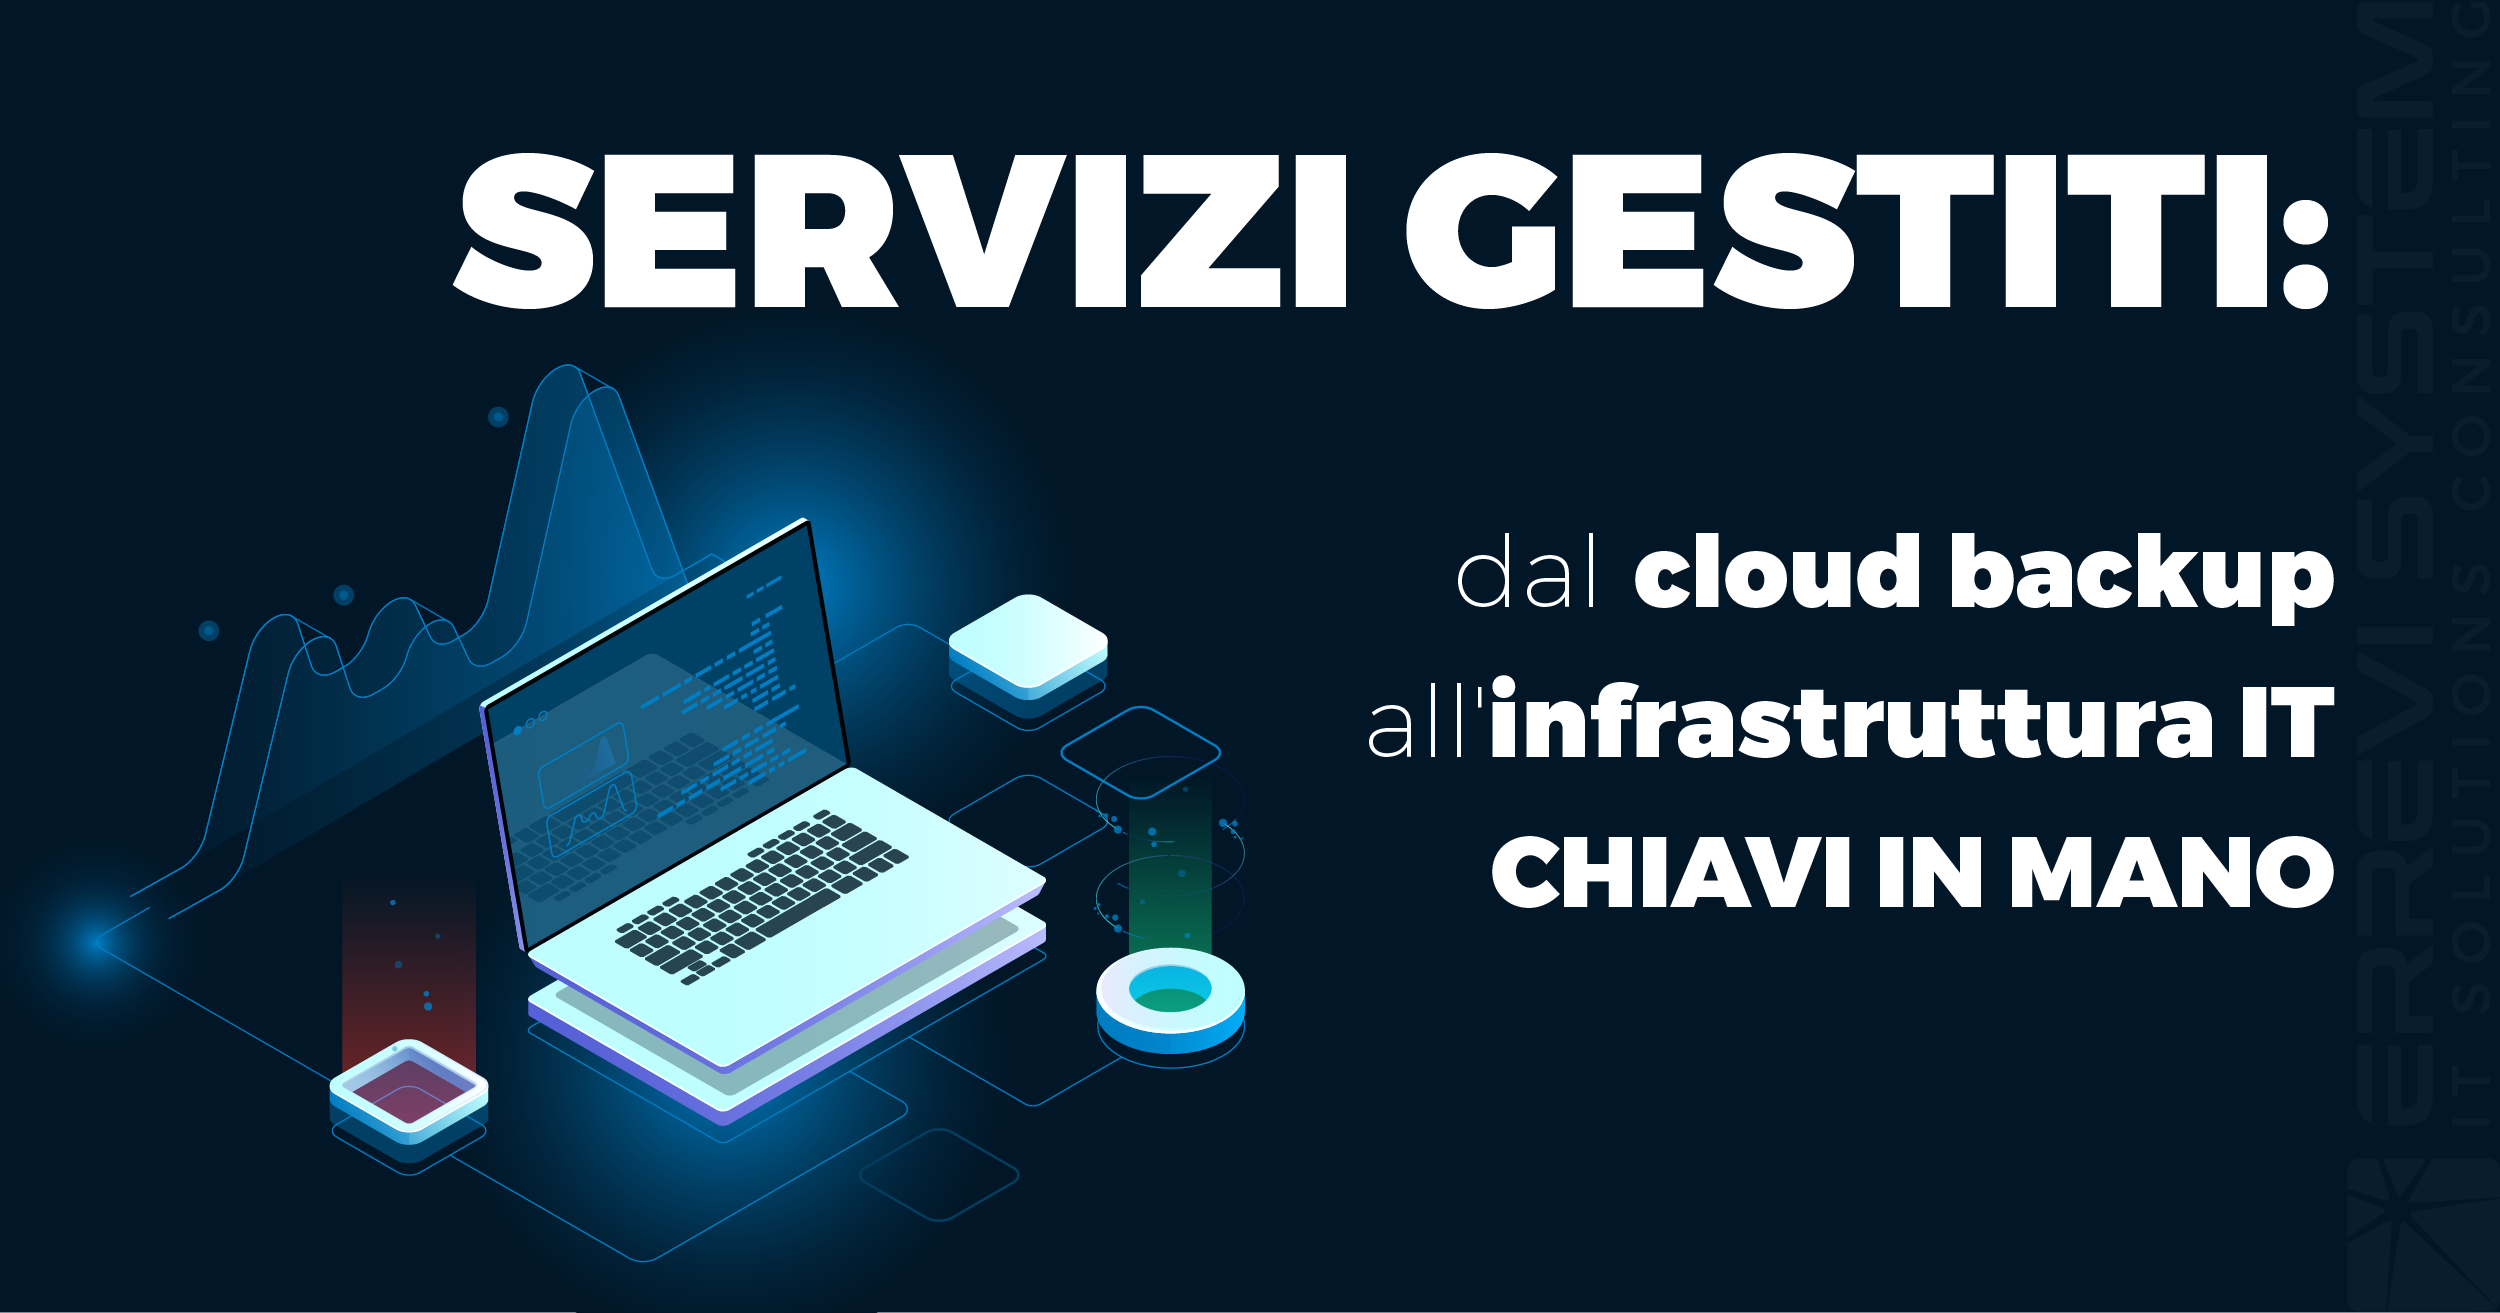 Servizi cloud e gestiti: dal cloud backup all'infrastruttura IT chiavi in mano